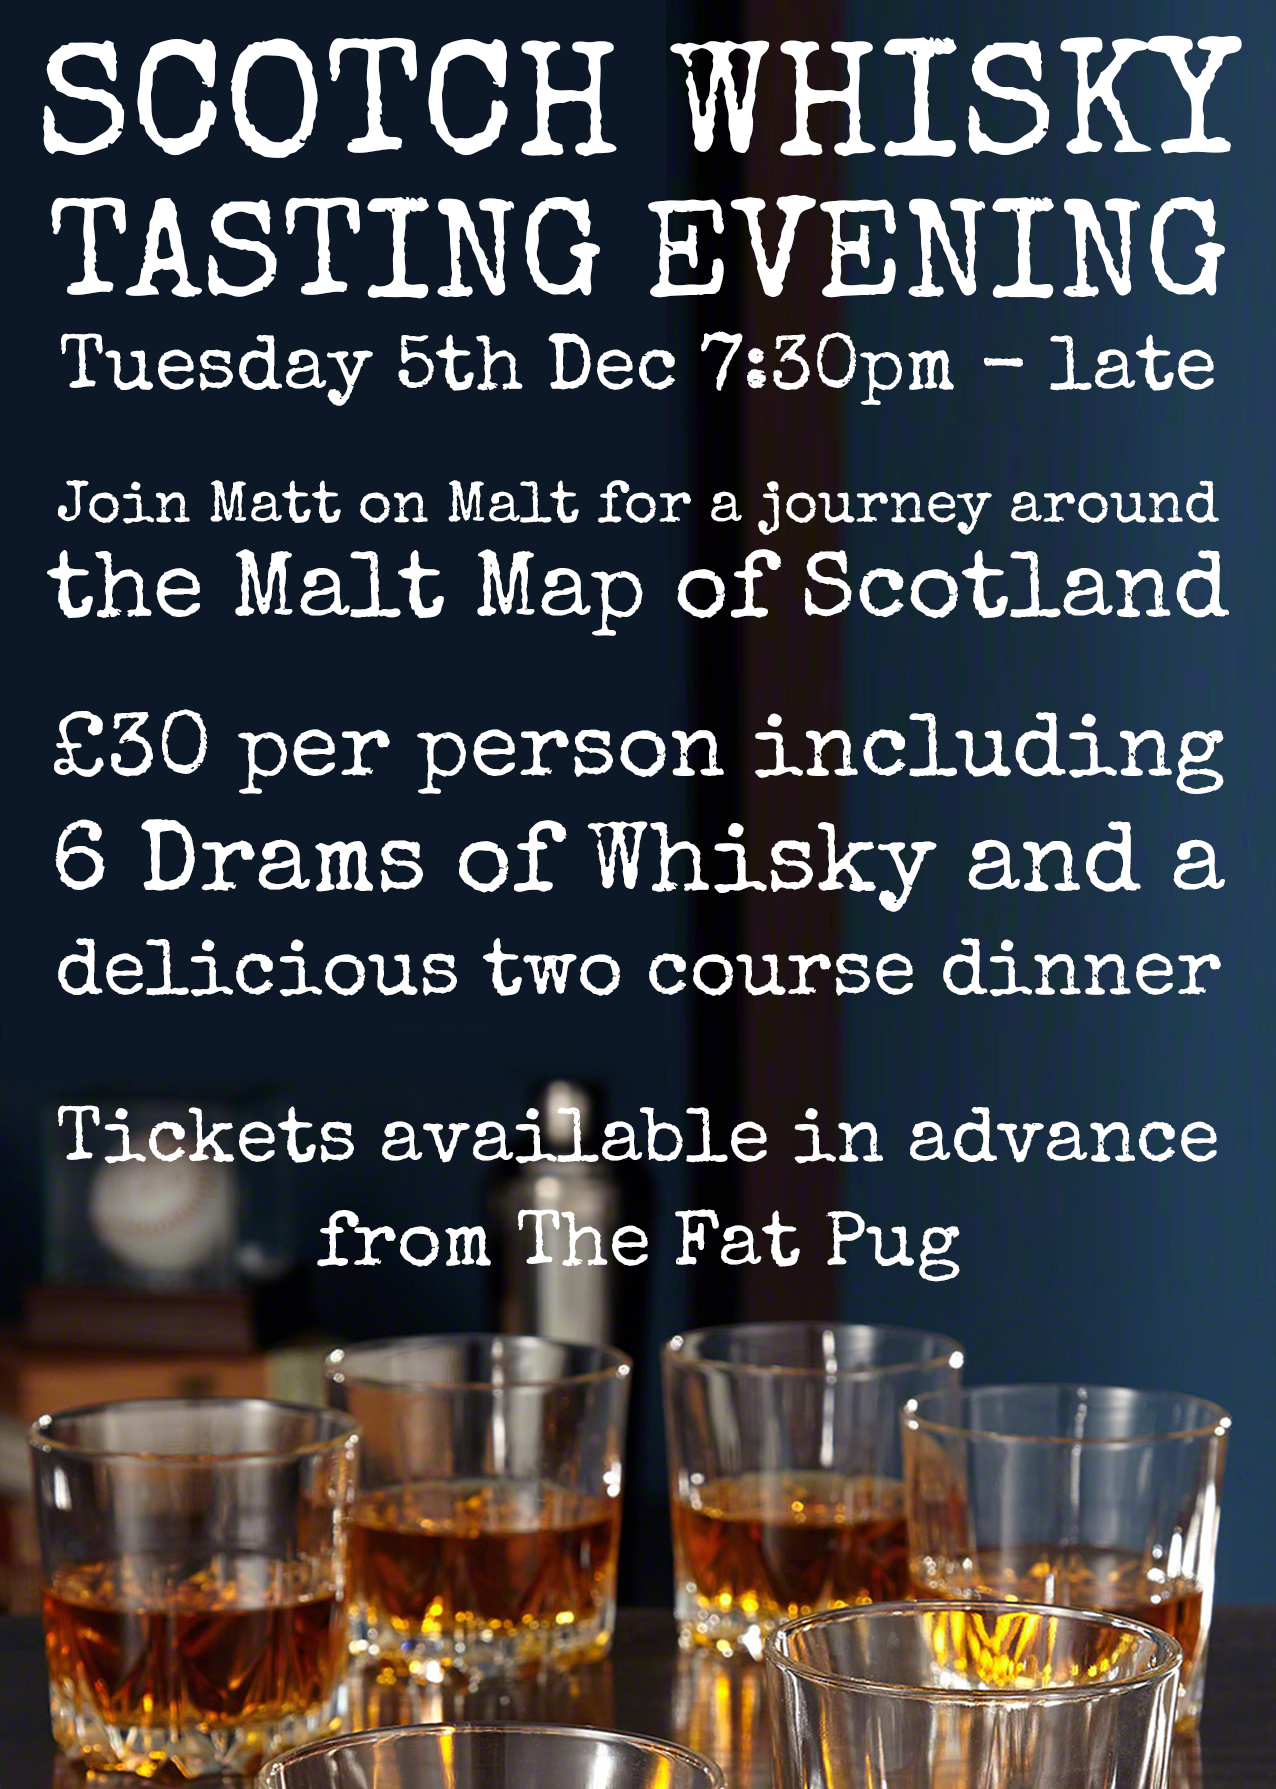 whisky event tfp 2 lr.jpg